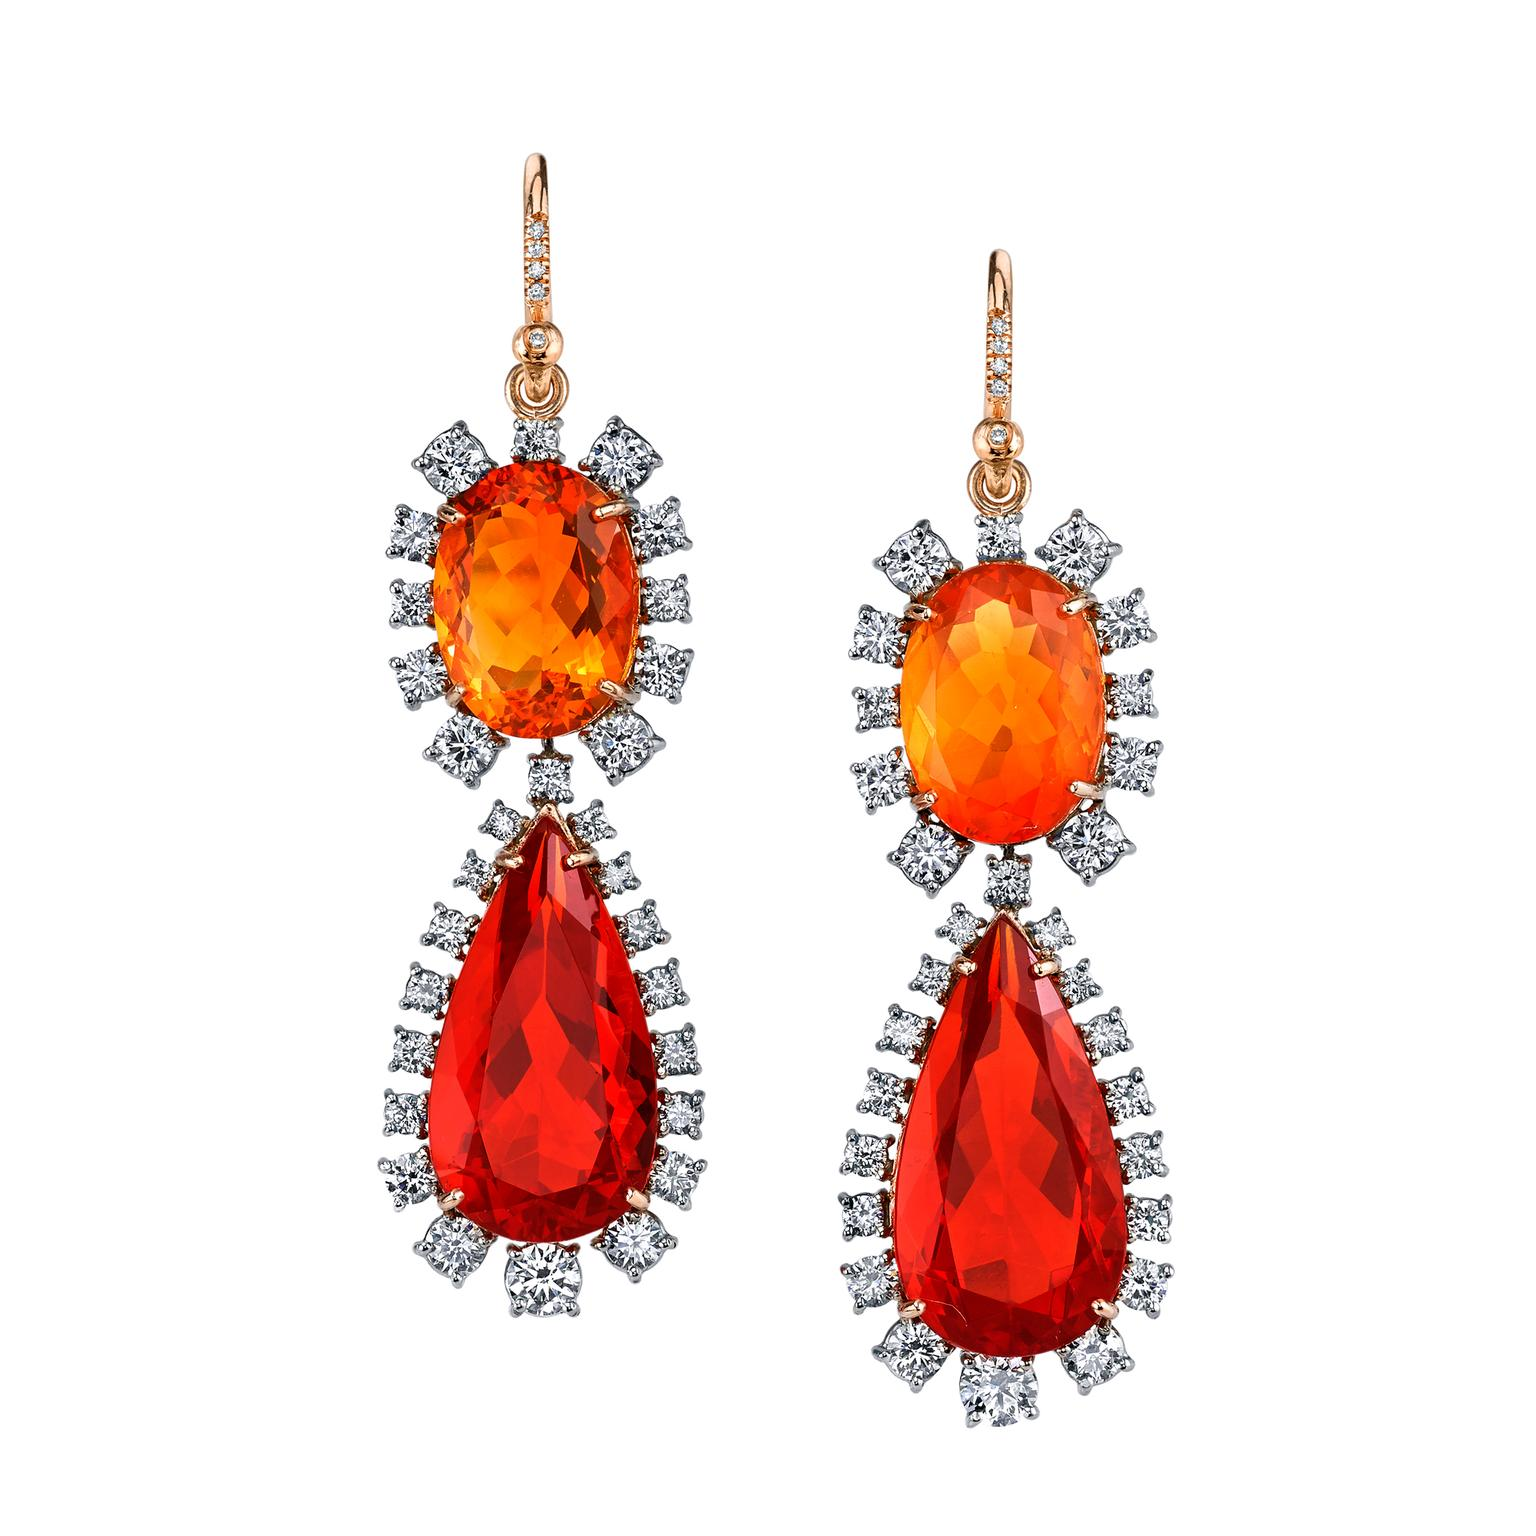 Irene Neuwirth fire opal and diamond earrings